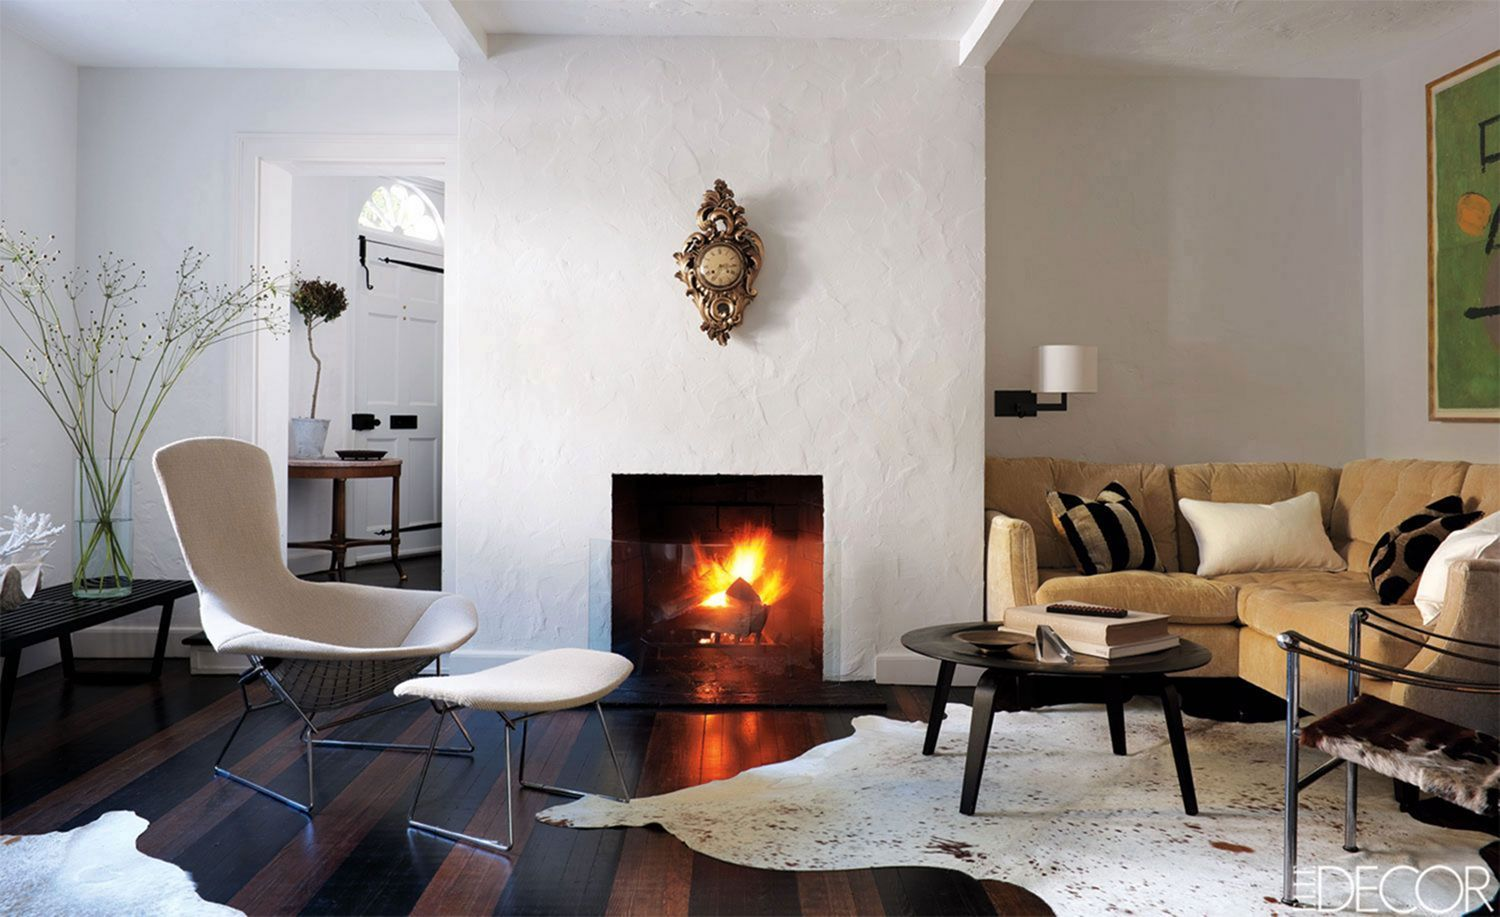 Best Top 8 Beautiful Living Room Design Ideas With Fireplace When You First Open The Door Of The House The First Room You Living Room With Fireplace Beautiful Living Rooms Rustic Apartment